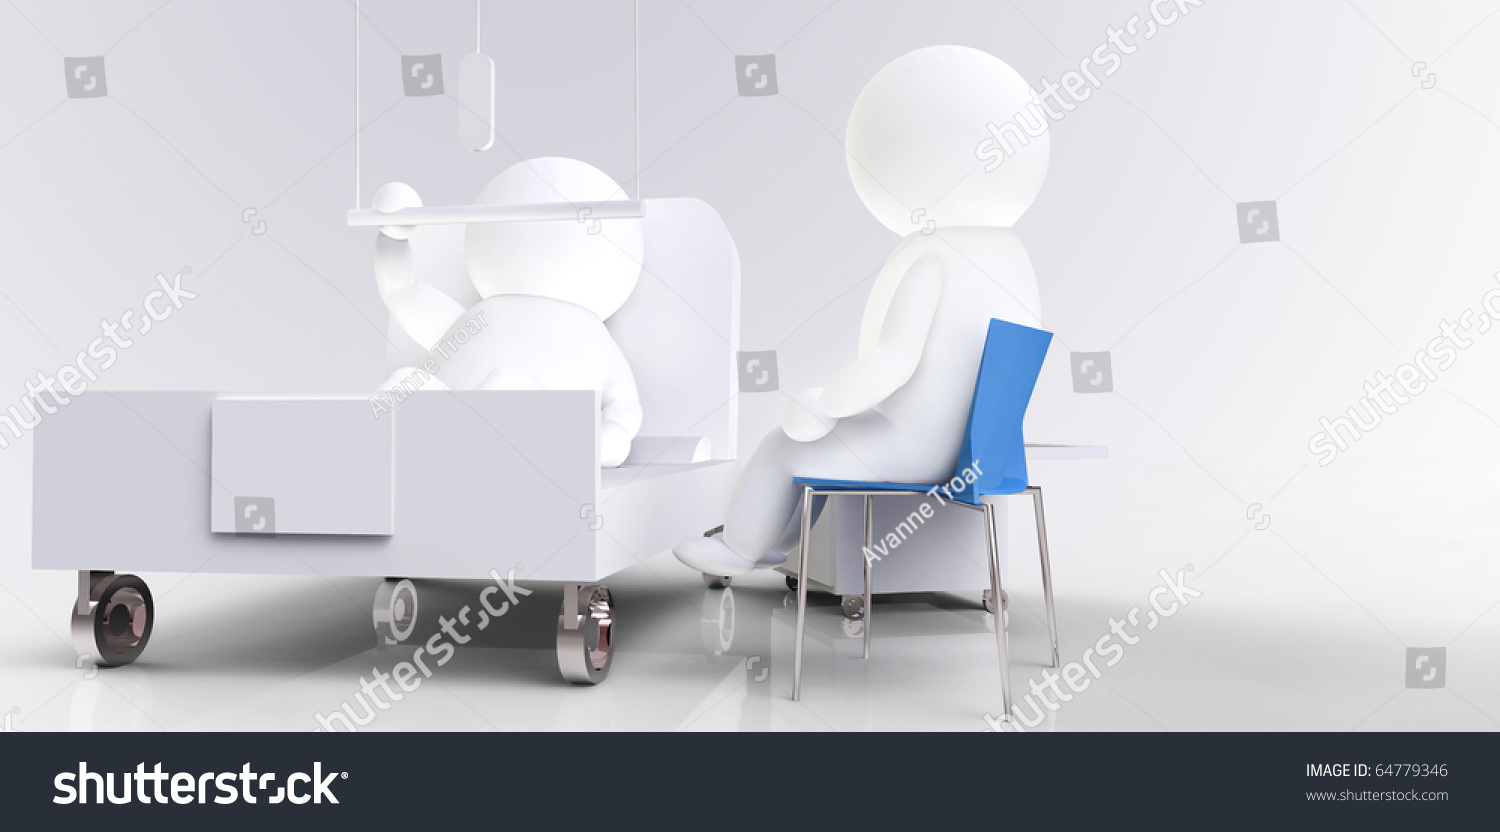 Royalty Free Stock Illustration Of Hospital Situation Patient Bed